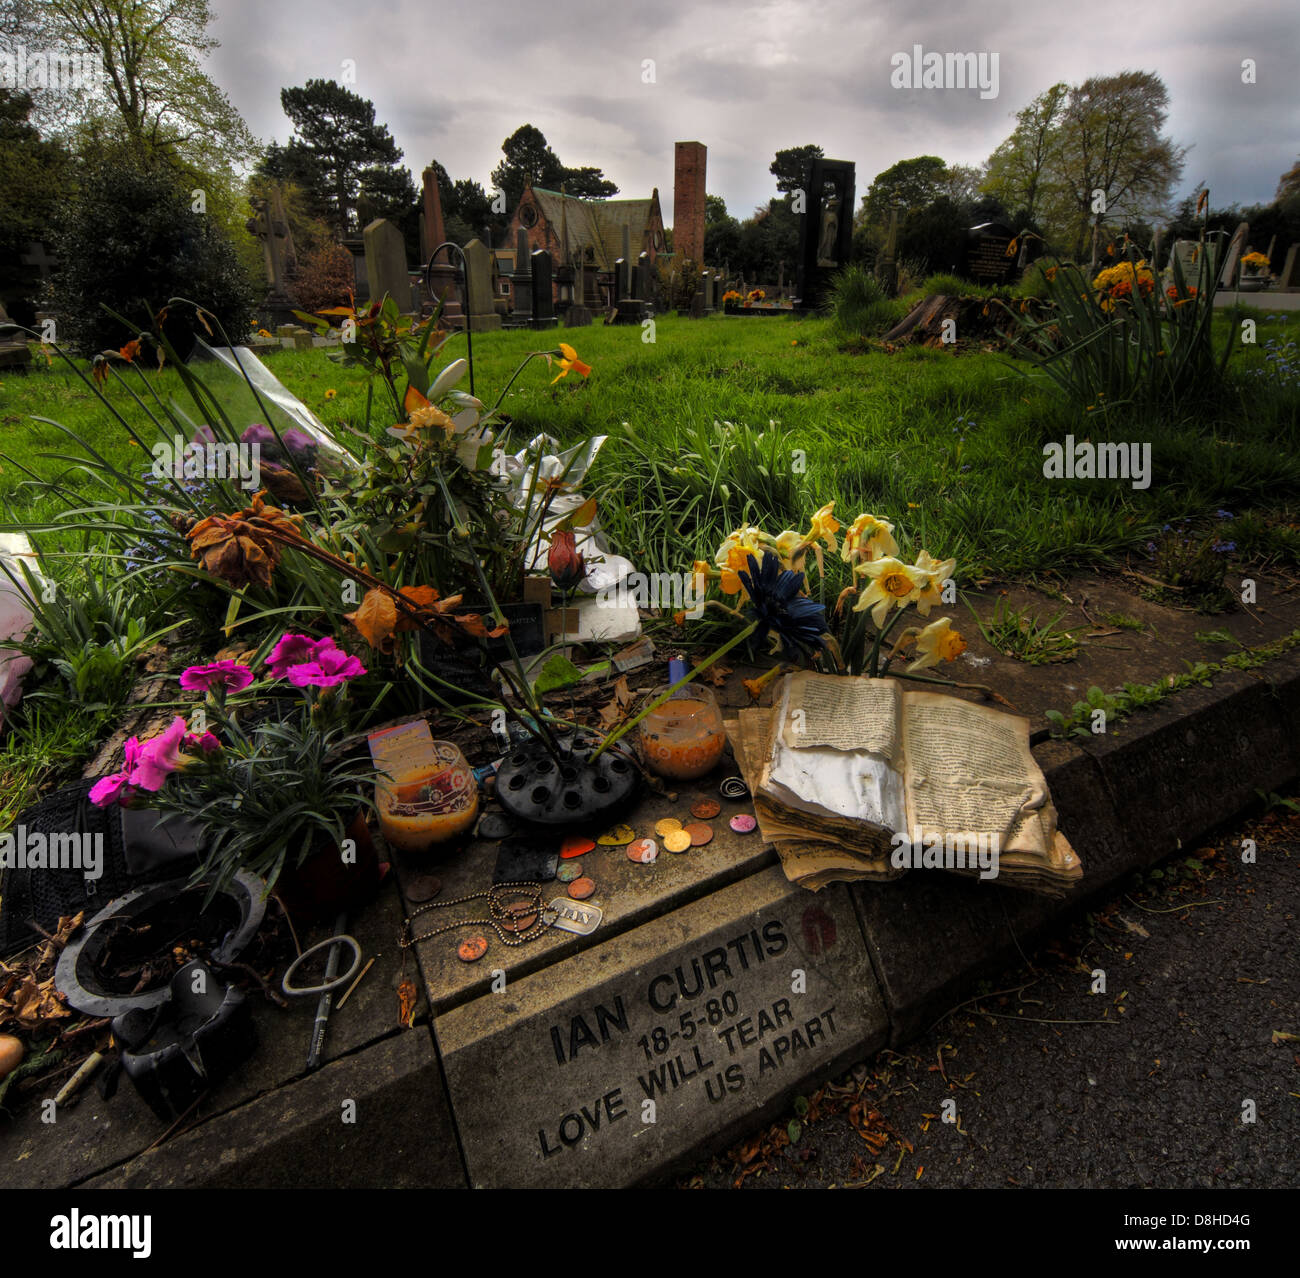 The Gravestone in Macclesfield Cemetery of Ian Curtis , vocalist of Manchester Joy Division Rock Band died 18-5 - Stock Image